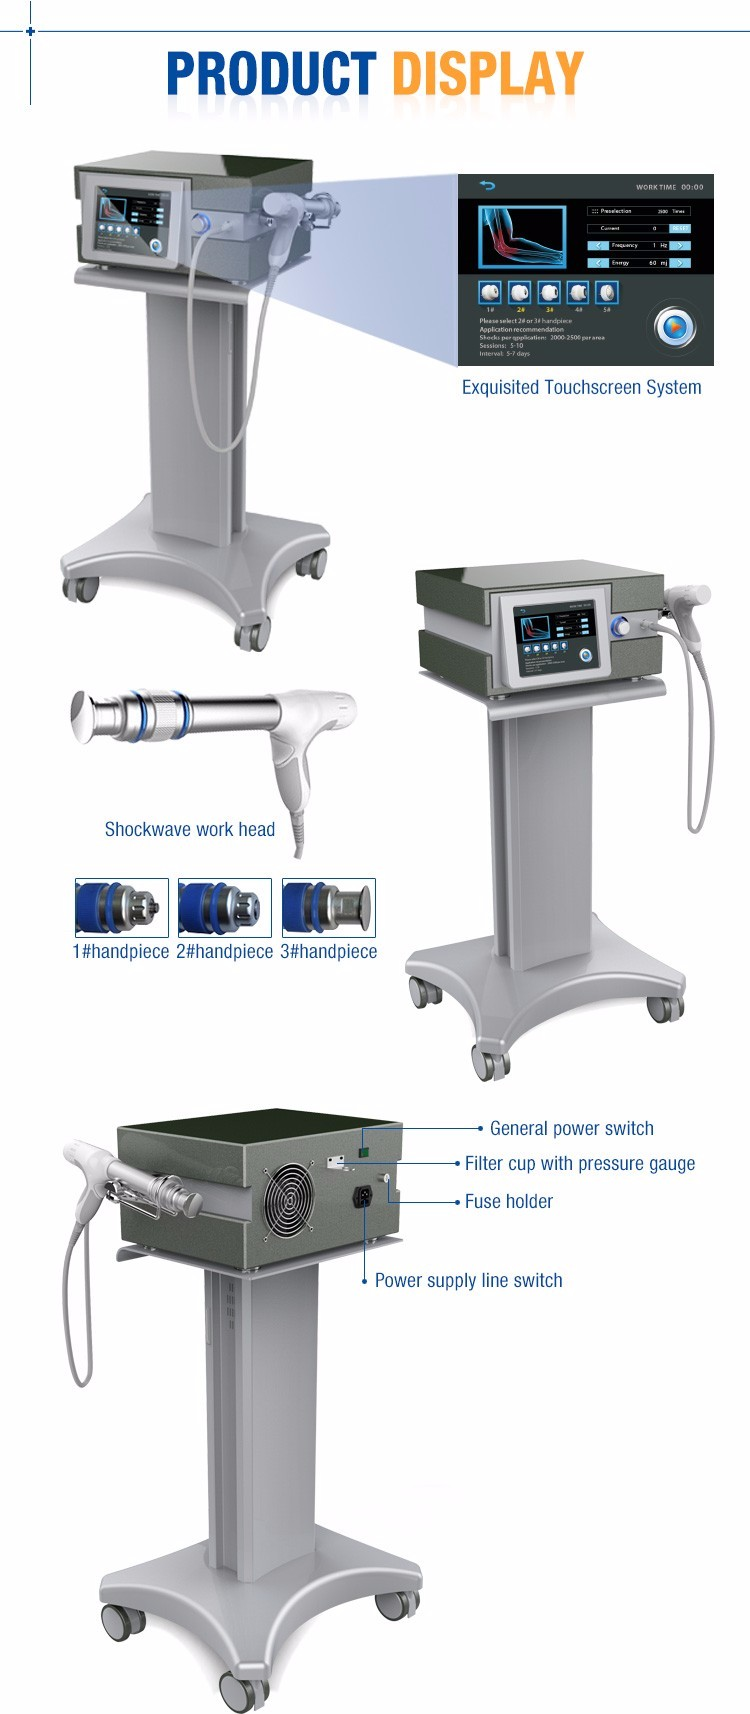 2015zimmer shockwave /equine shock wave therapy/acoustic wave therapy machine